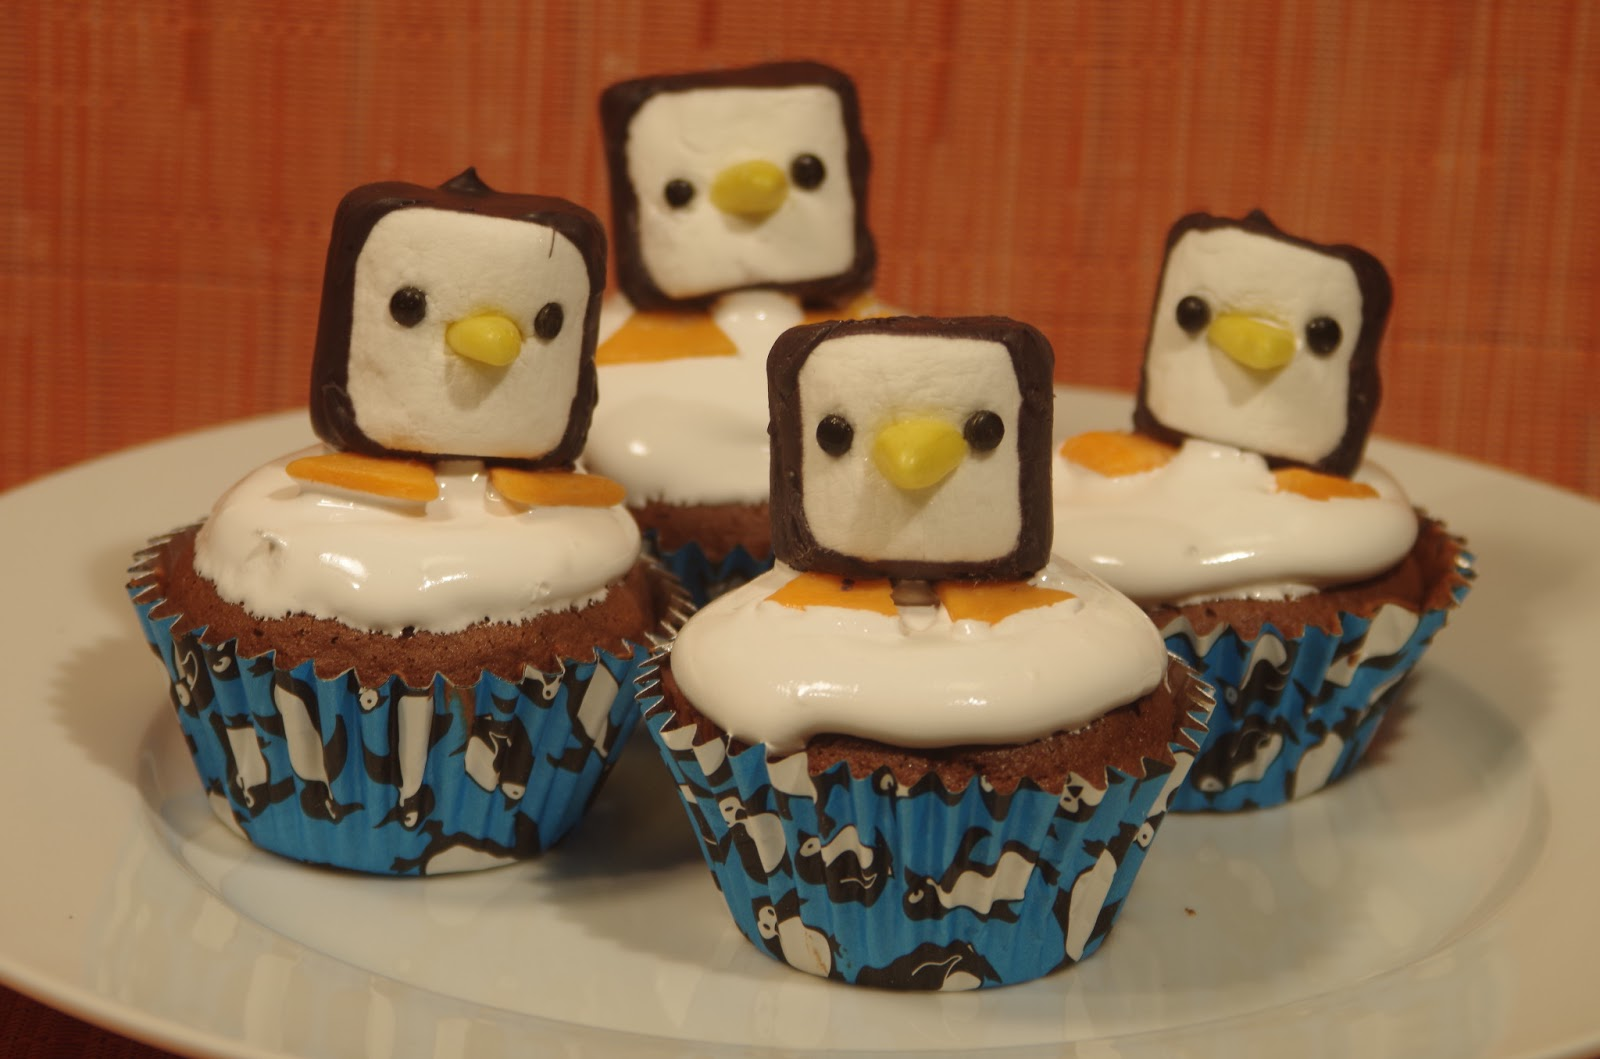 Cupcake Decorating Ideas With Marshmallows : Sparked Ideas: Marshmallow Penguin Decorations